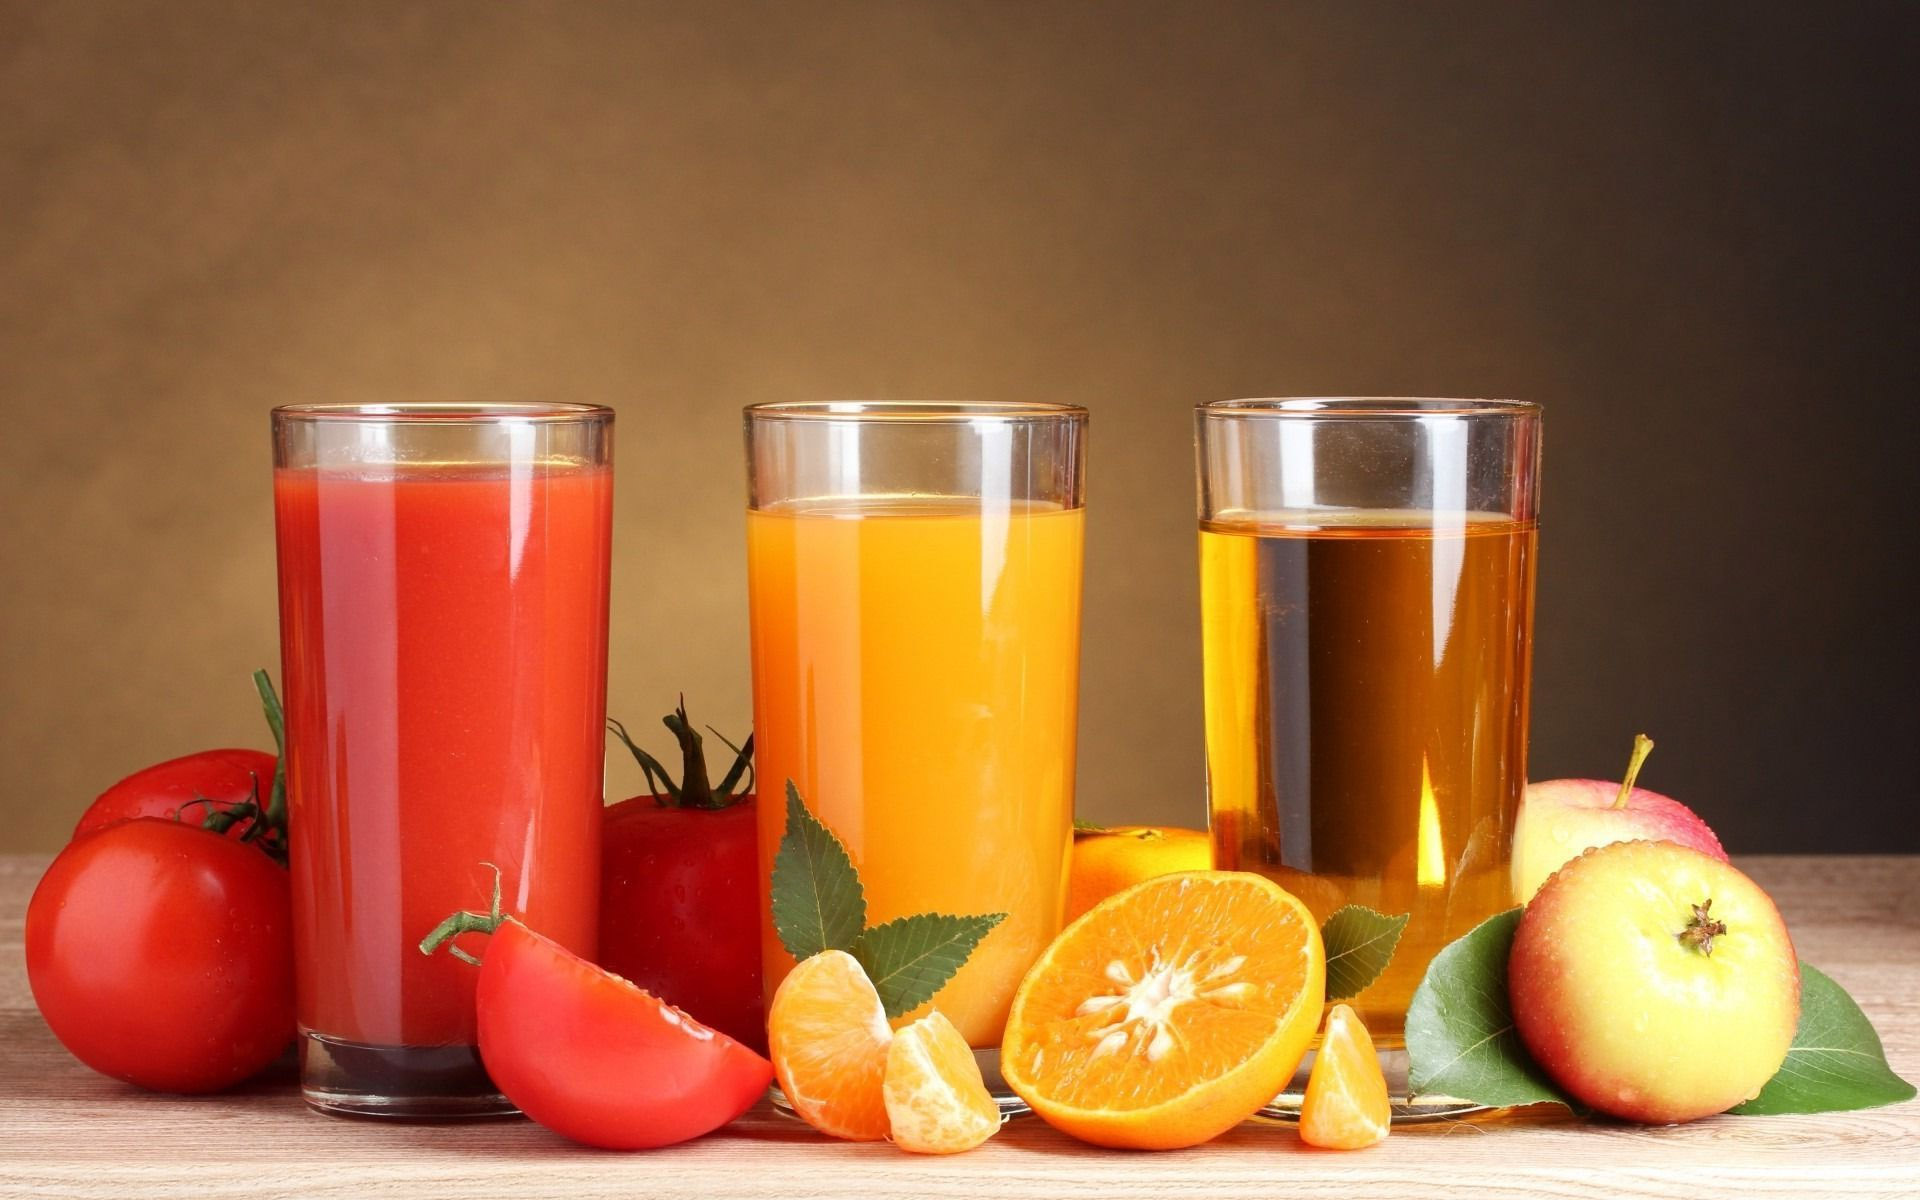 Fresh Juice Collection Hd Wallpaper Hd Latest Wallpapers